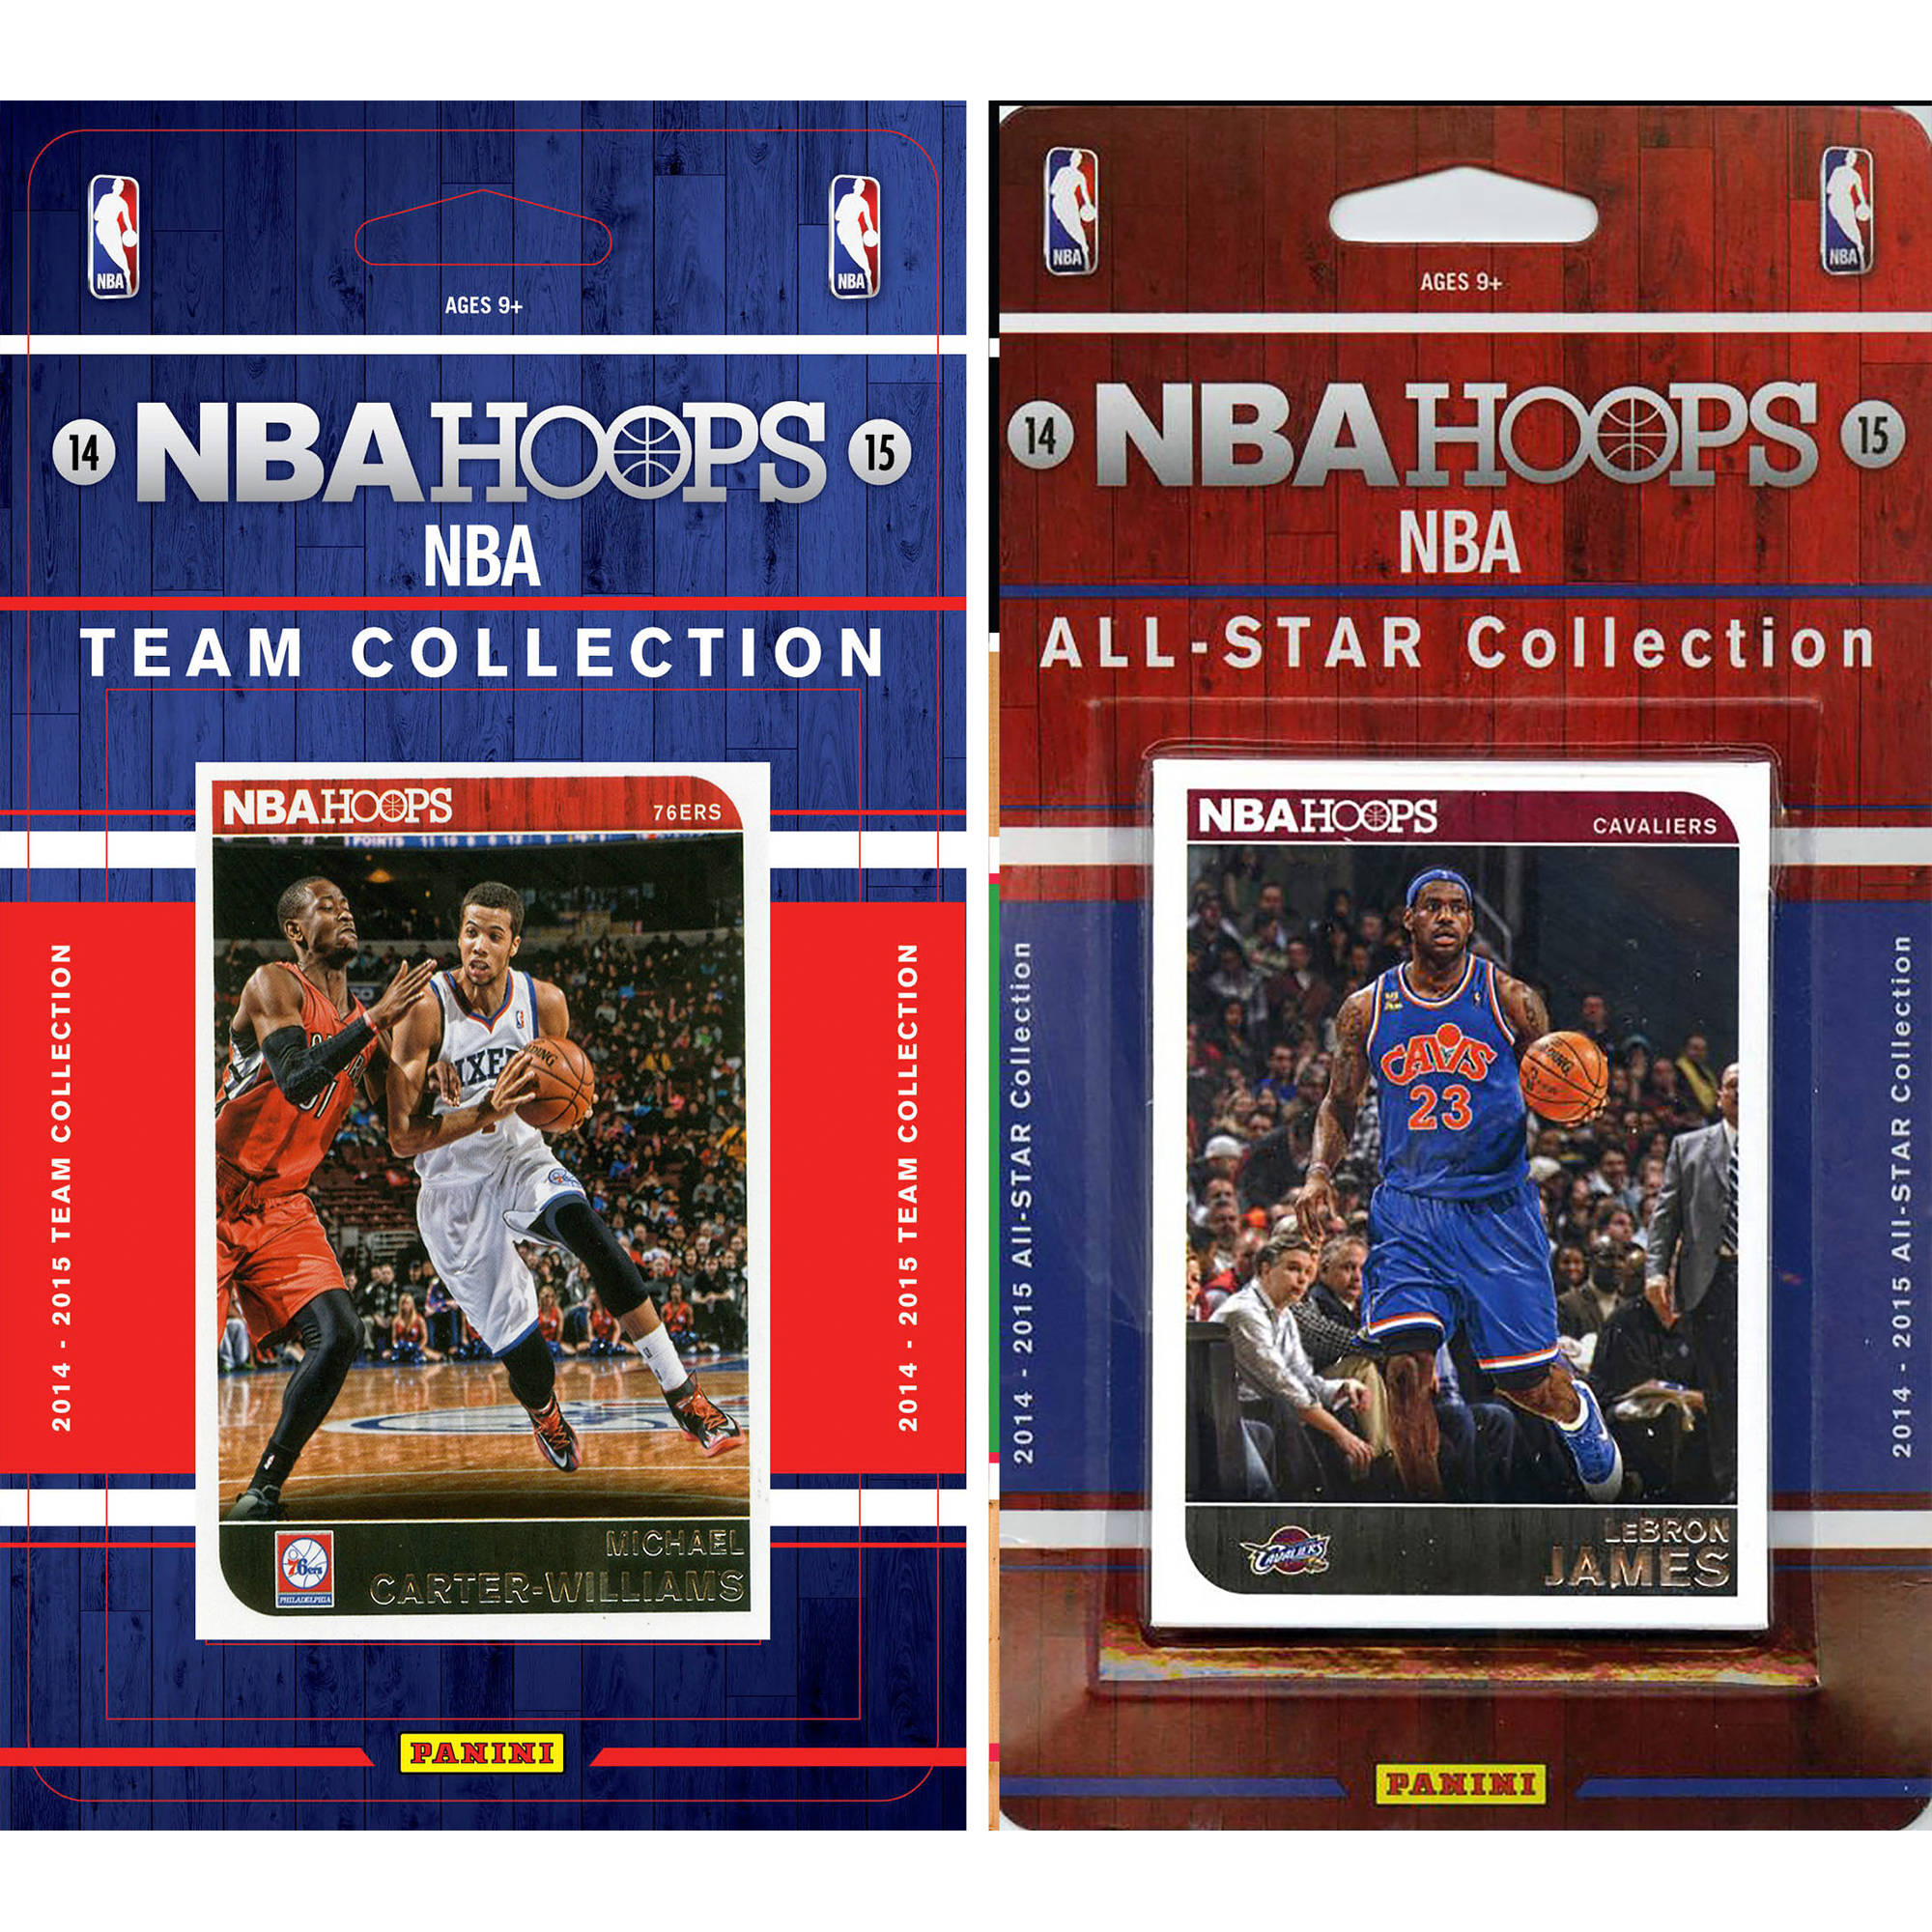 C&I Collectables NBA Philadelphia 76ers Licensed 2014-15 Hoops Team Set Plus 2014-15 Hoops All-Star Set